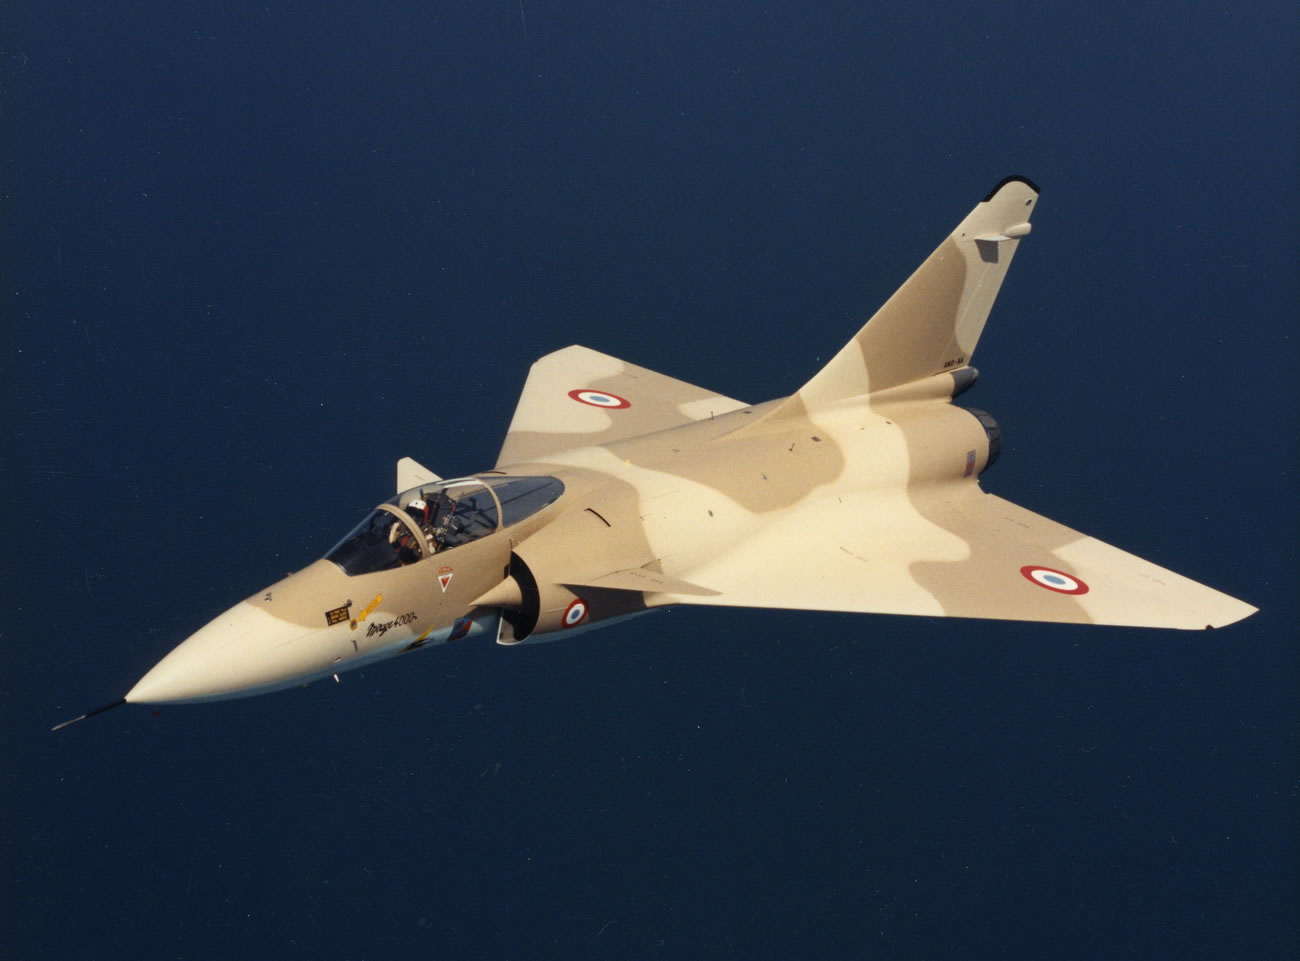 http://www.aircraftinformation.info/Images/Mirage_4000_01.jpg